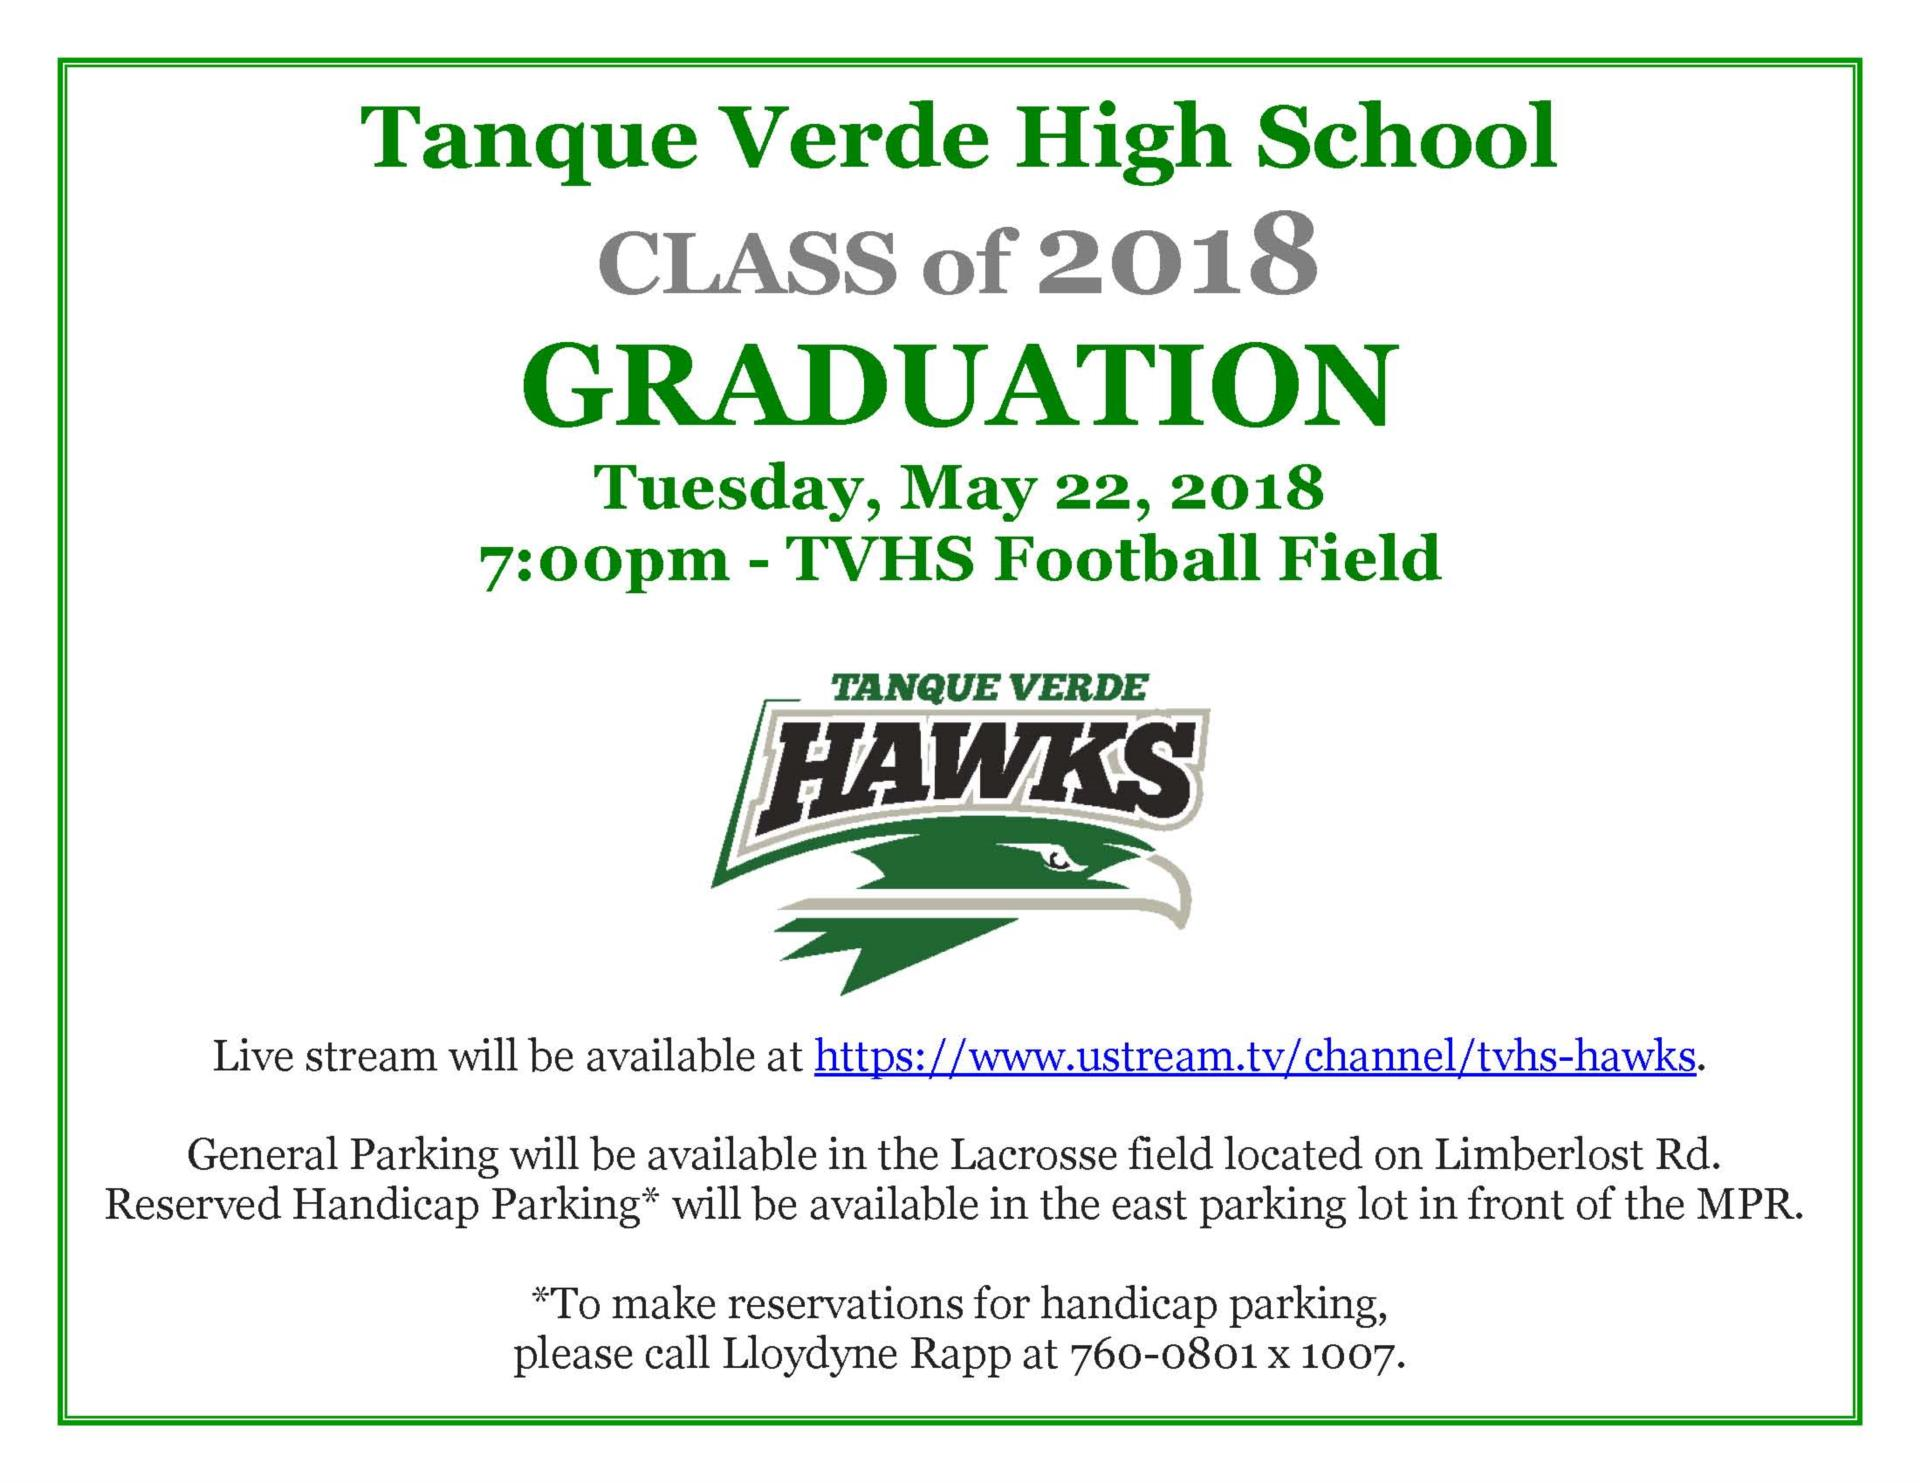 High school graduation announcement May 22nd at 7:00 p.m.